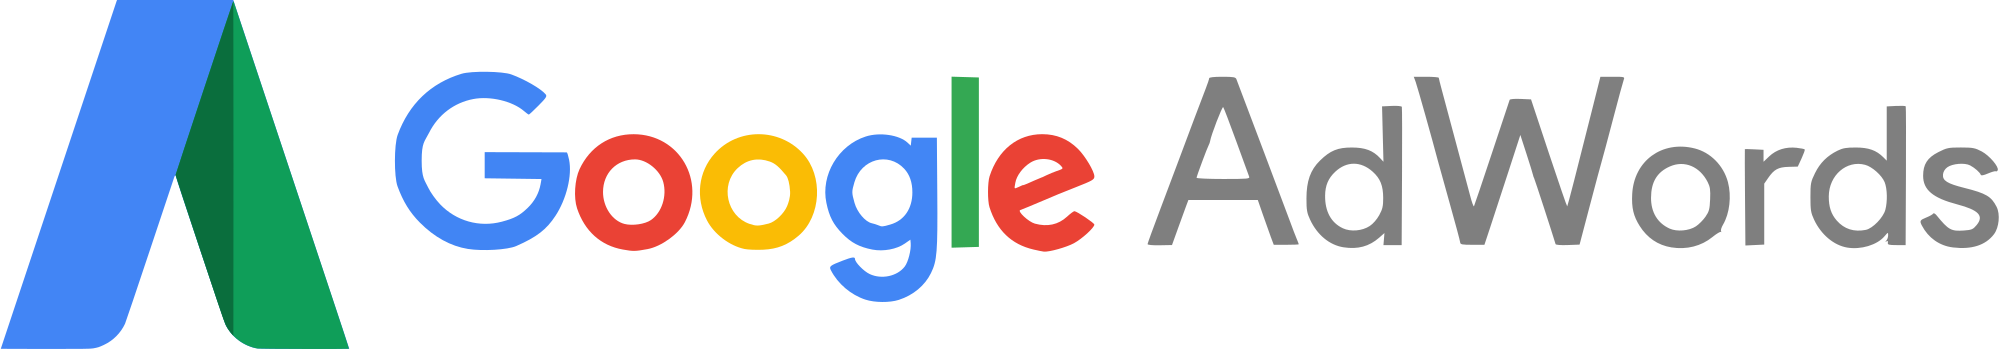 google adwords logo, for financial marketing blog